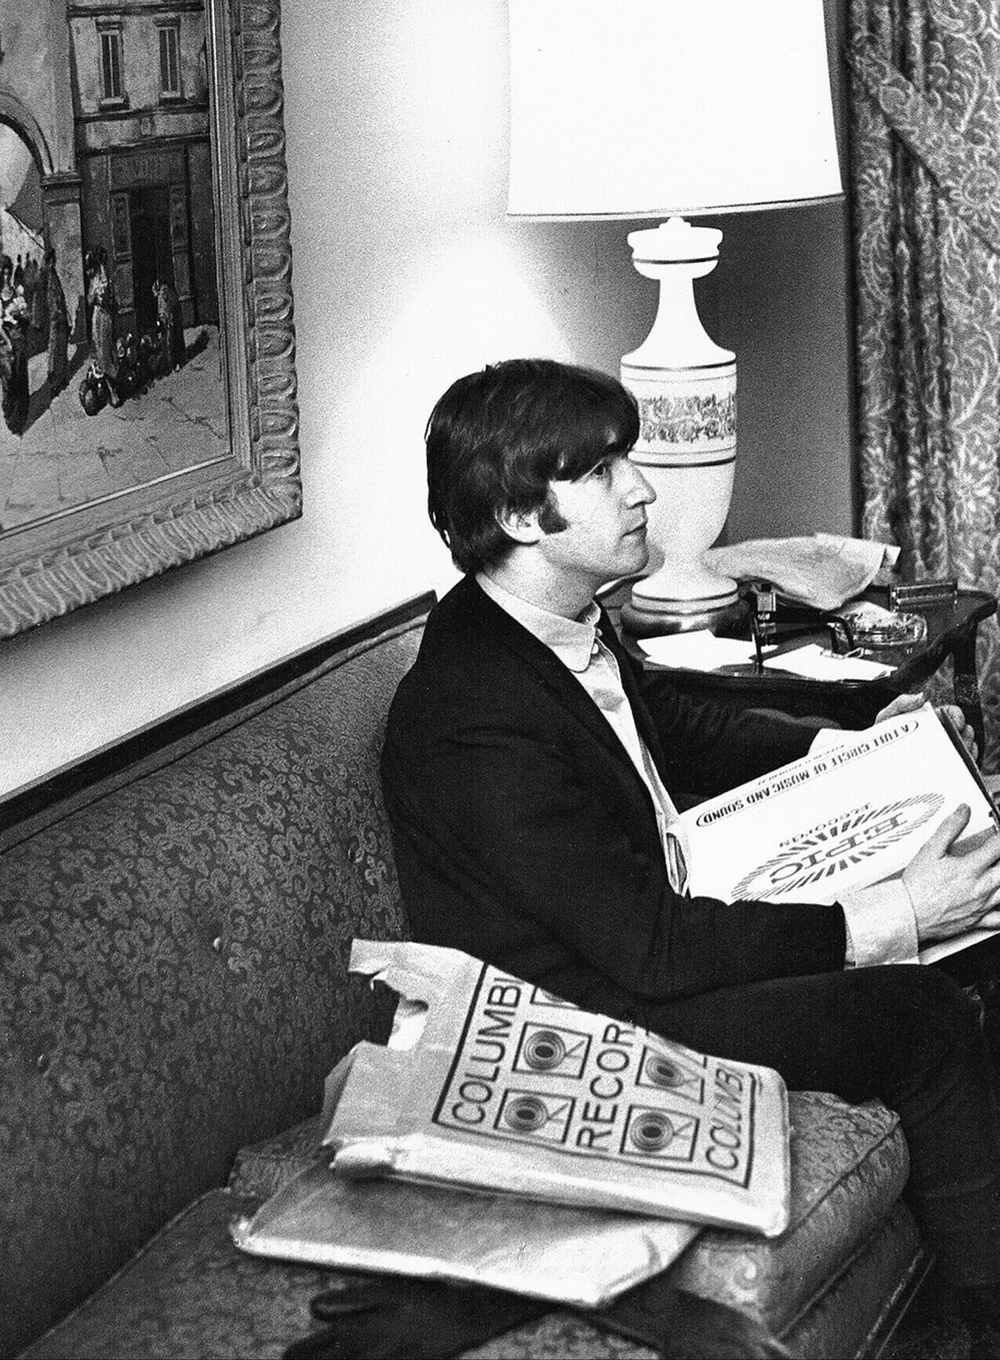 John Lennon with a bag full of records, 1964.